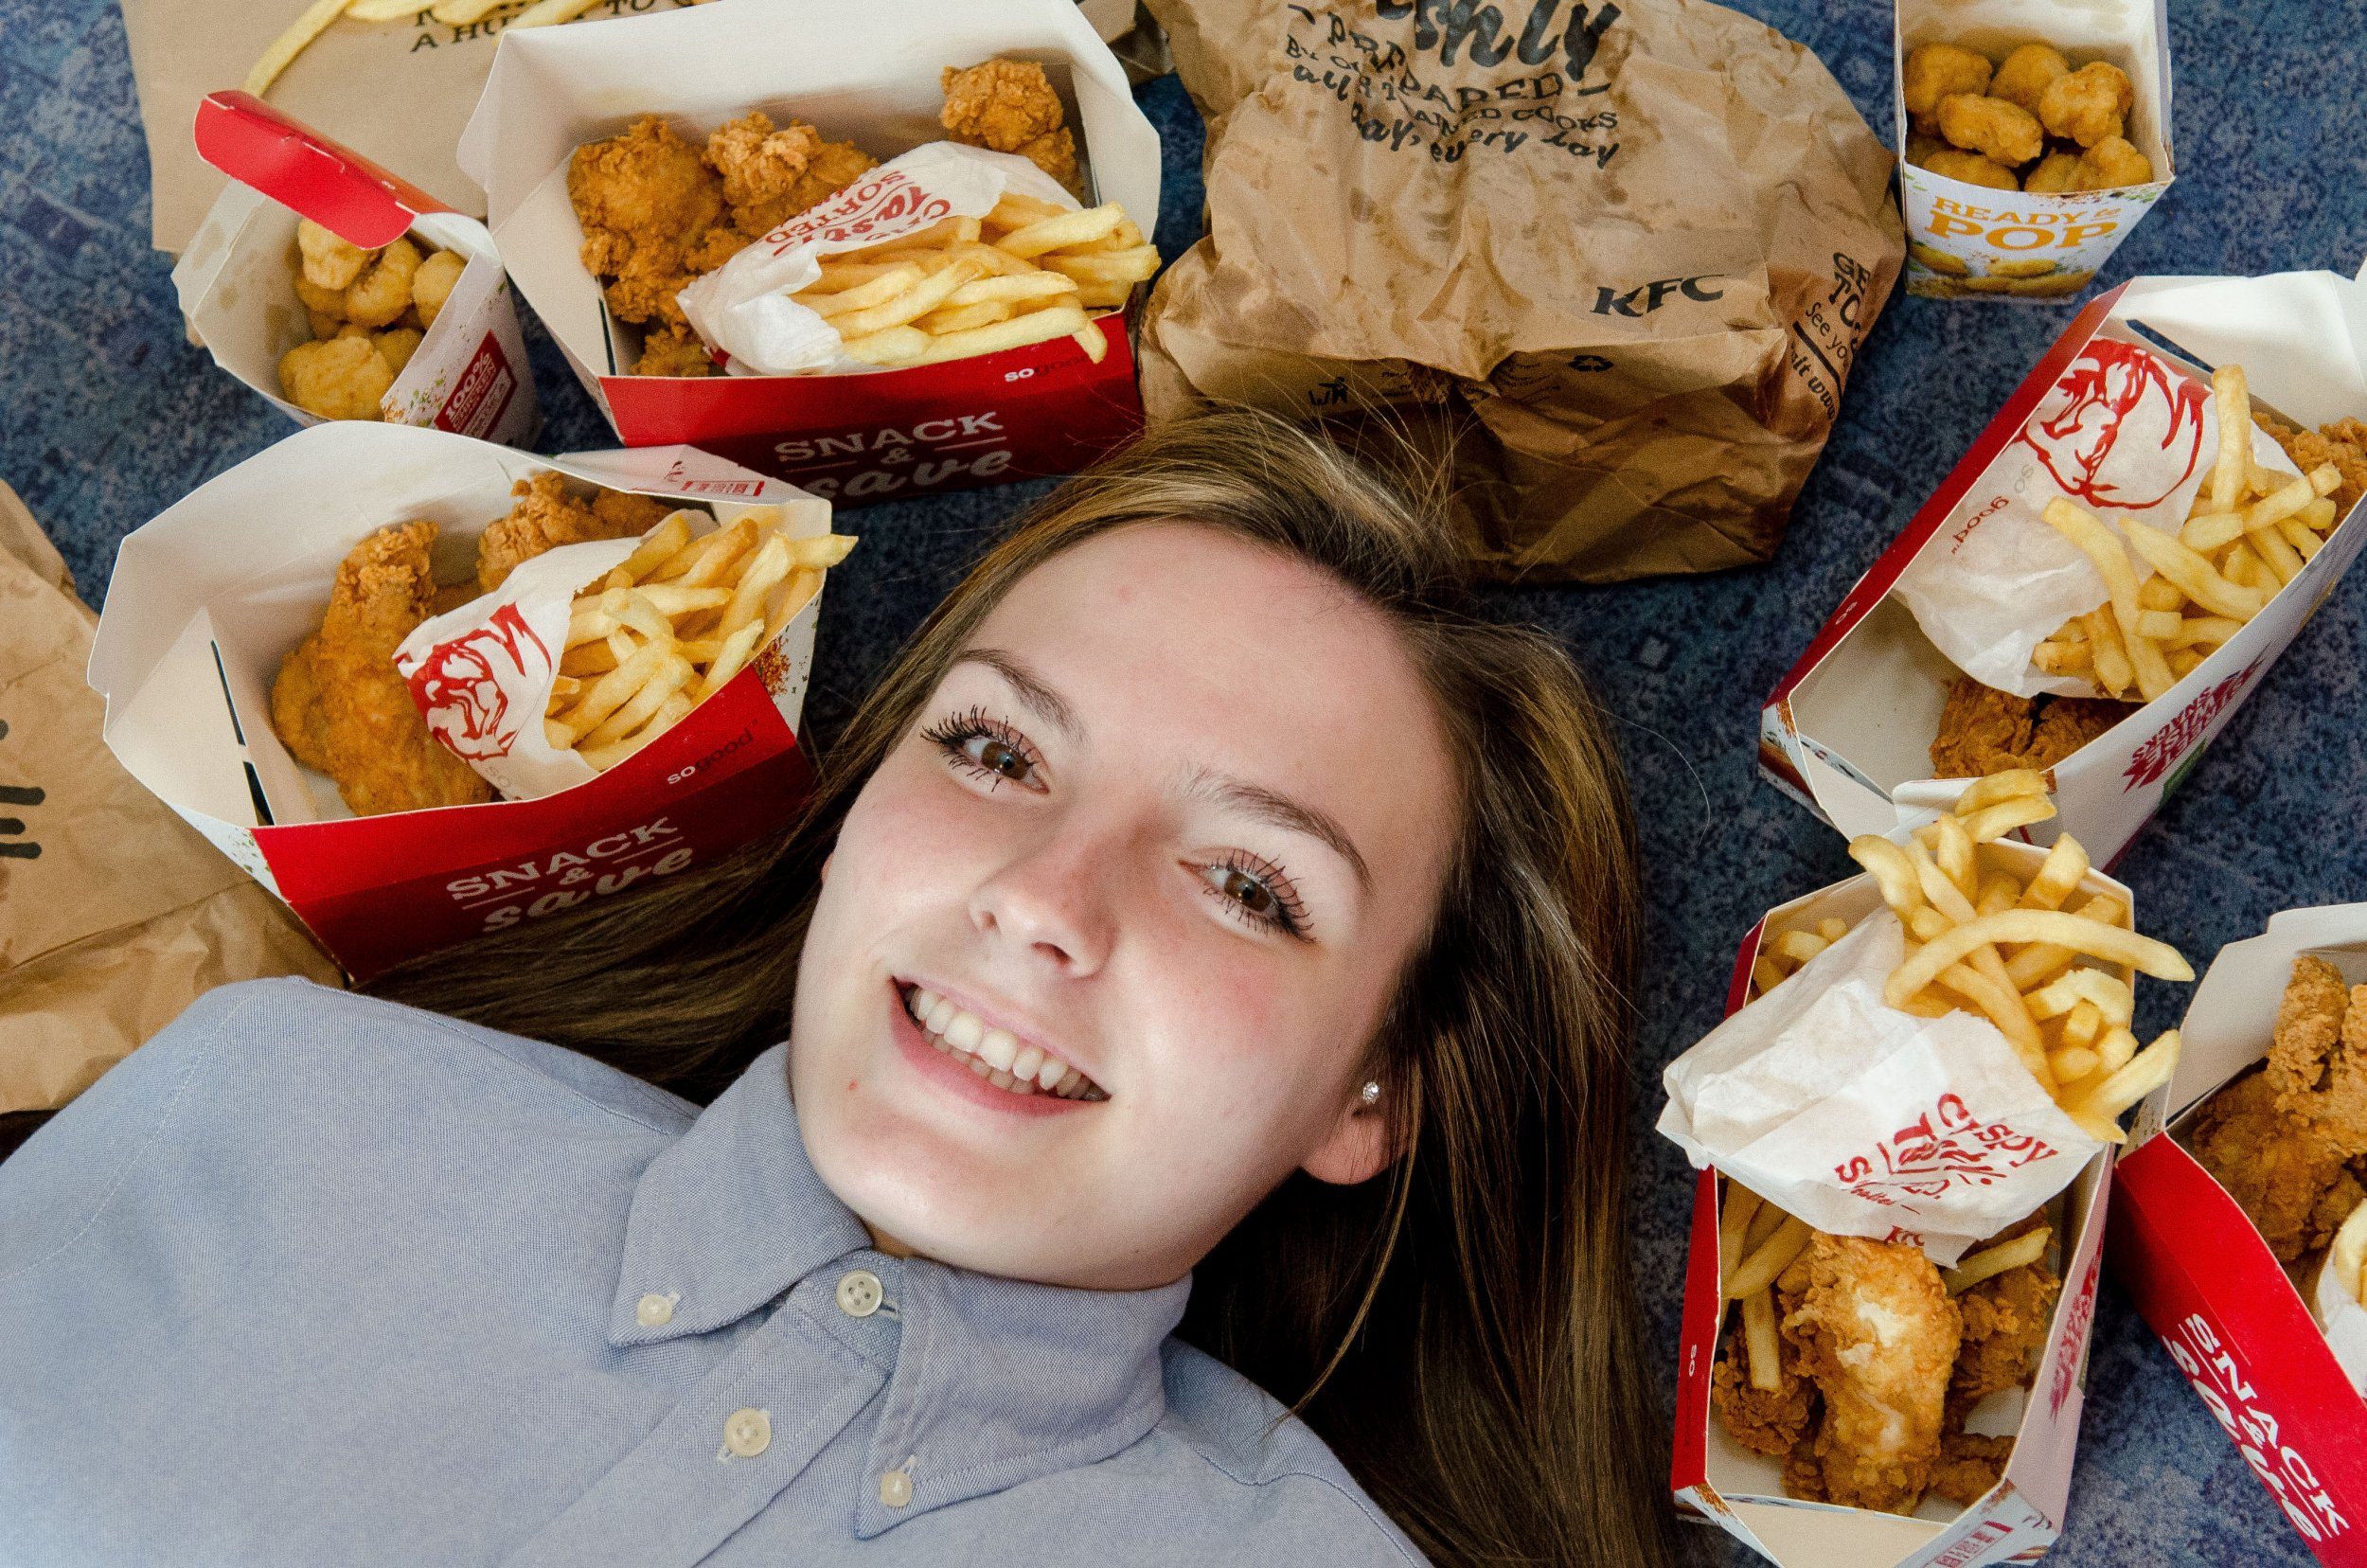 PIC BY JAMES NEWELL/MERCURY PRESS (PICTURED: GEORGIA SCOTNEY, 21, WITH KFC FOOD) A woman who ate KFC chicken and chips for THREE years straight because of an eating disorder is finally cured and can try other foods for the first time. Georgie Scotney, from Portsmouth, had Selective Eating Disorder from a young age and for as long as she can remember has only ever been able to eat chicken and chips because she was too afraid to try anything else. She would even go for days without eating if she was away on a school trip and for the past three years all the 21-year-old had been able to eat was KFC chicken strips or popcorn chicken with chips. SEE MERCURY COPY